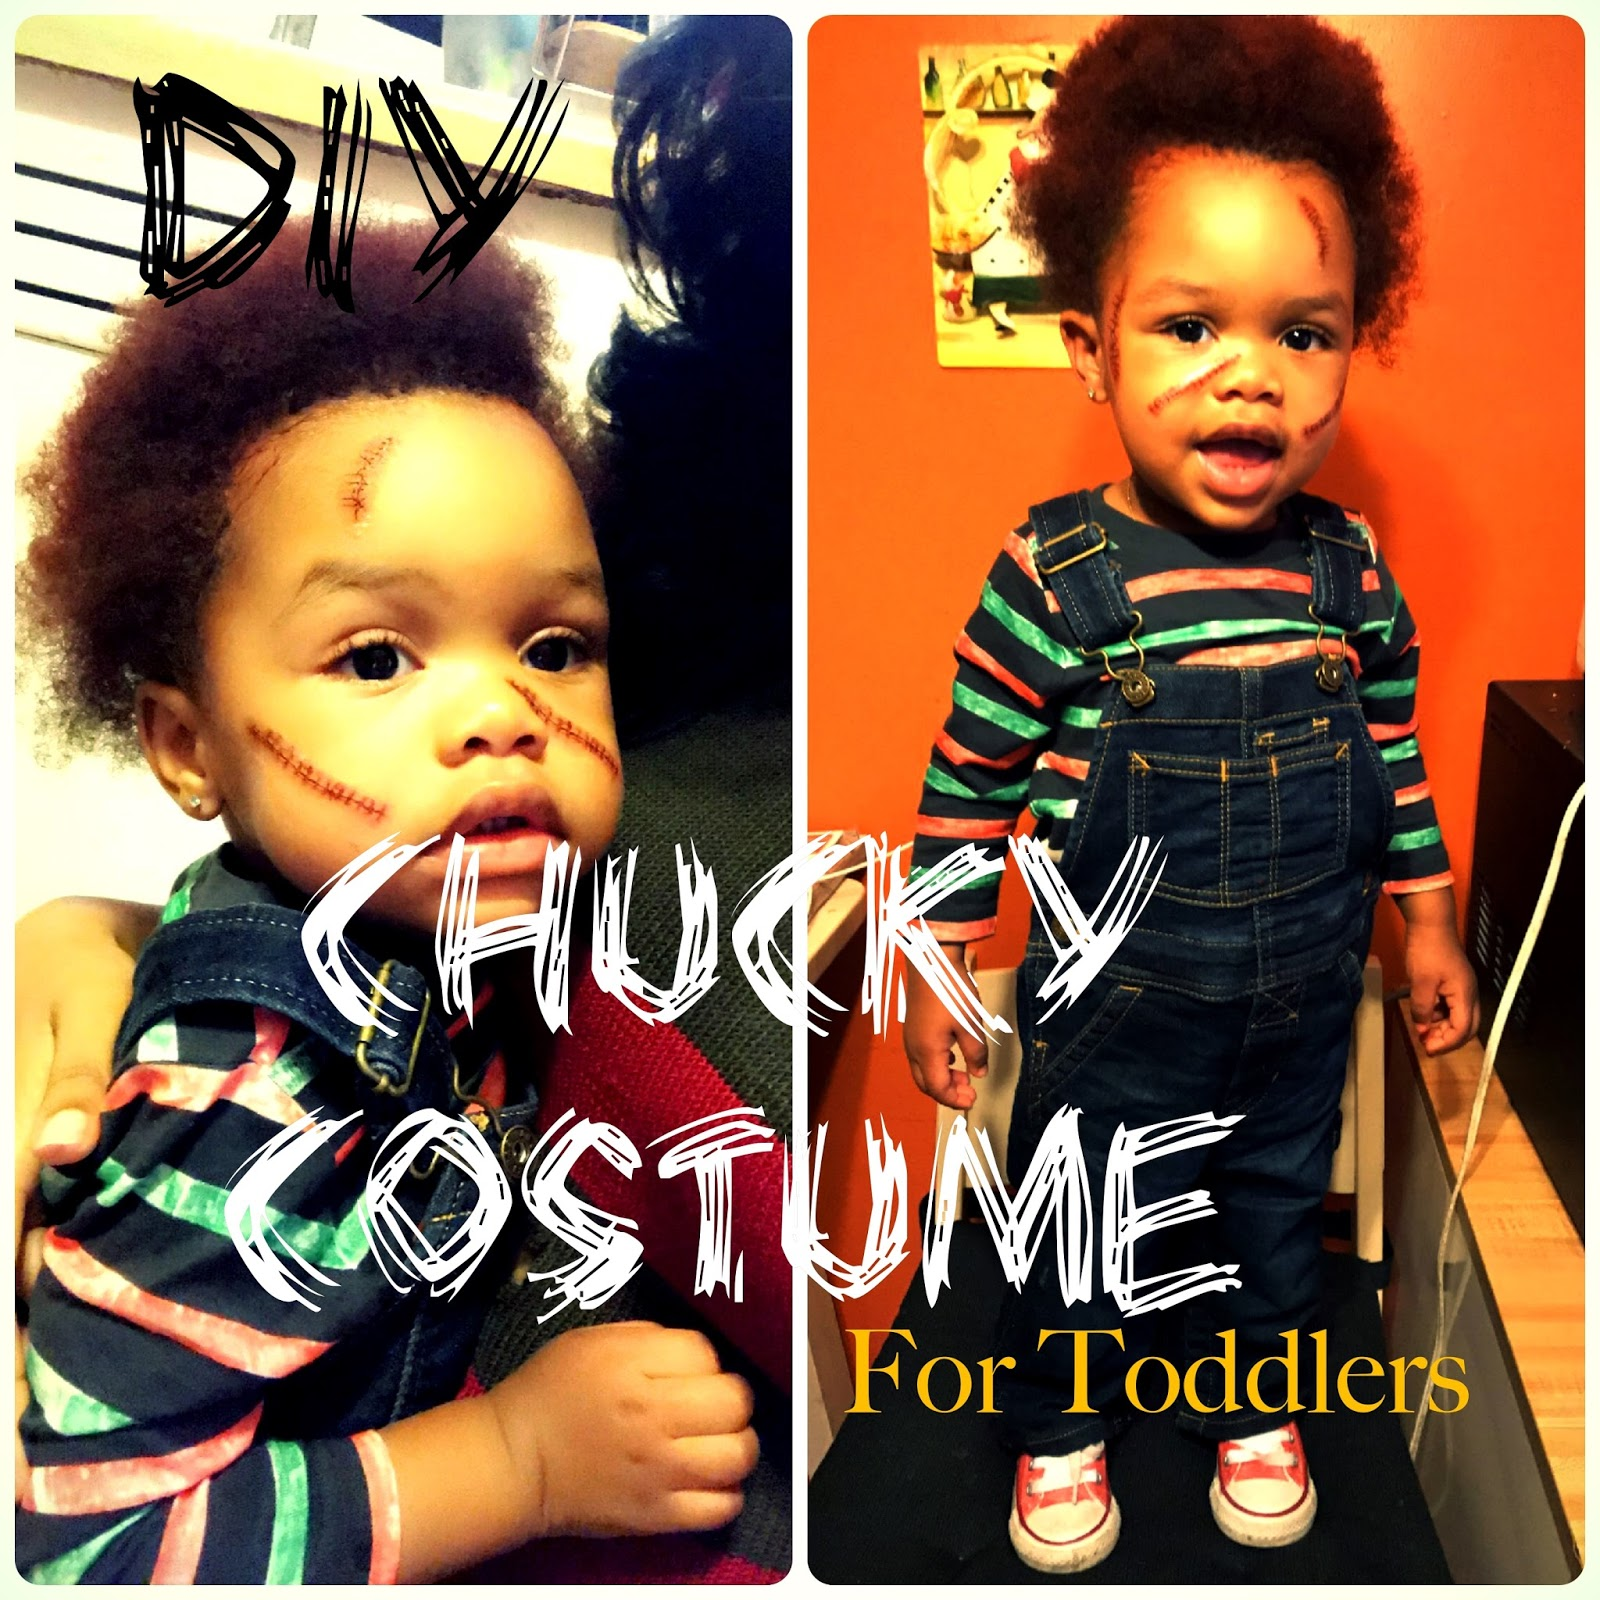 Chucky halloween costume DIY for Toddlers  sc 1 st  Sheu0027s Wright : chuckie halloween costume  - Germanpascual.Com